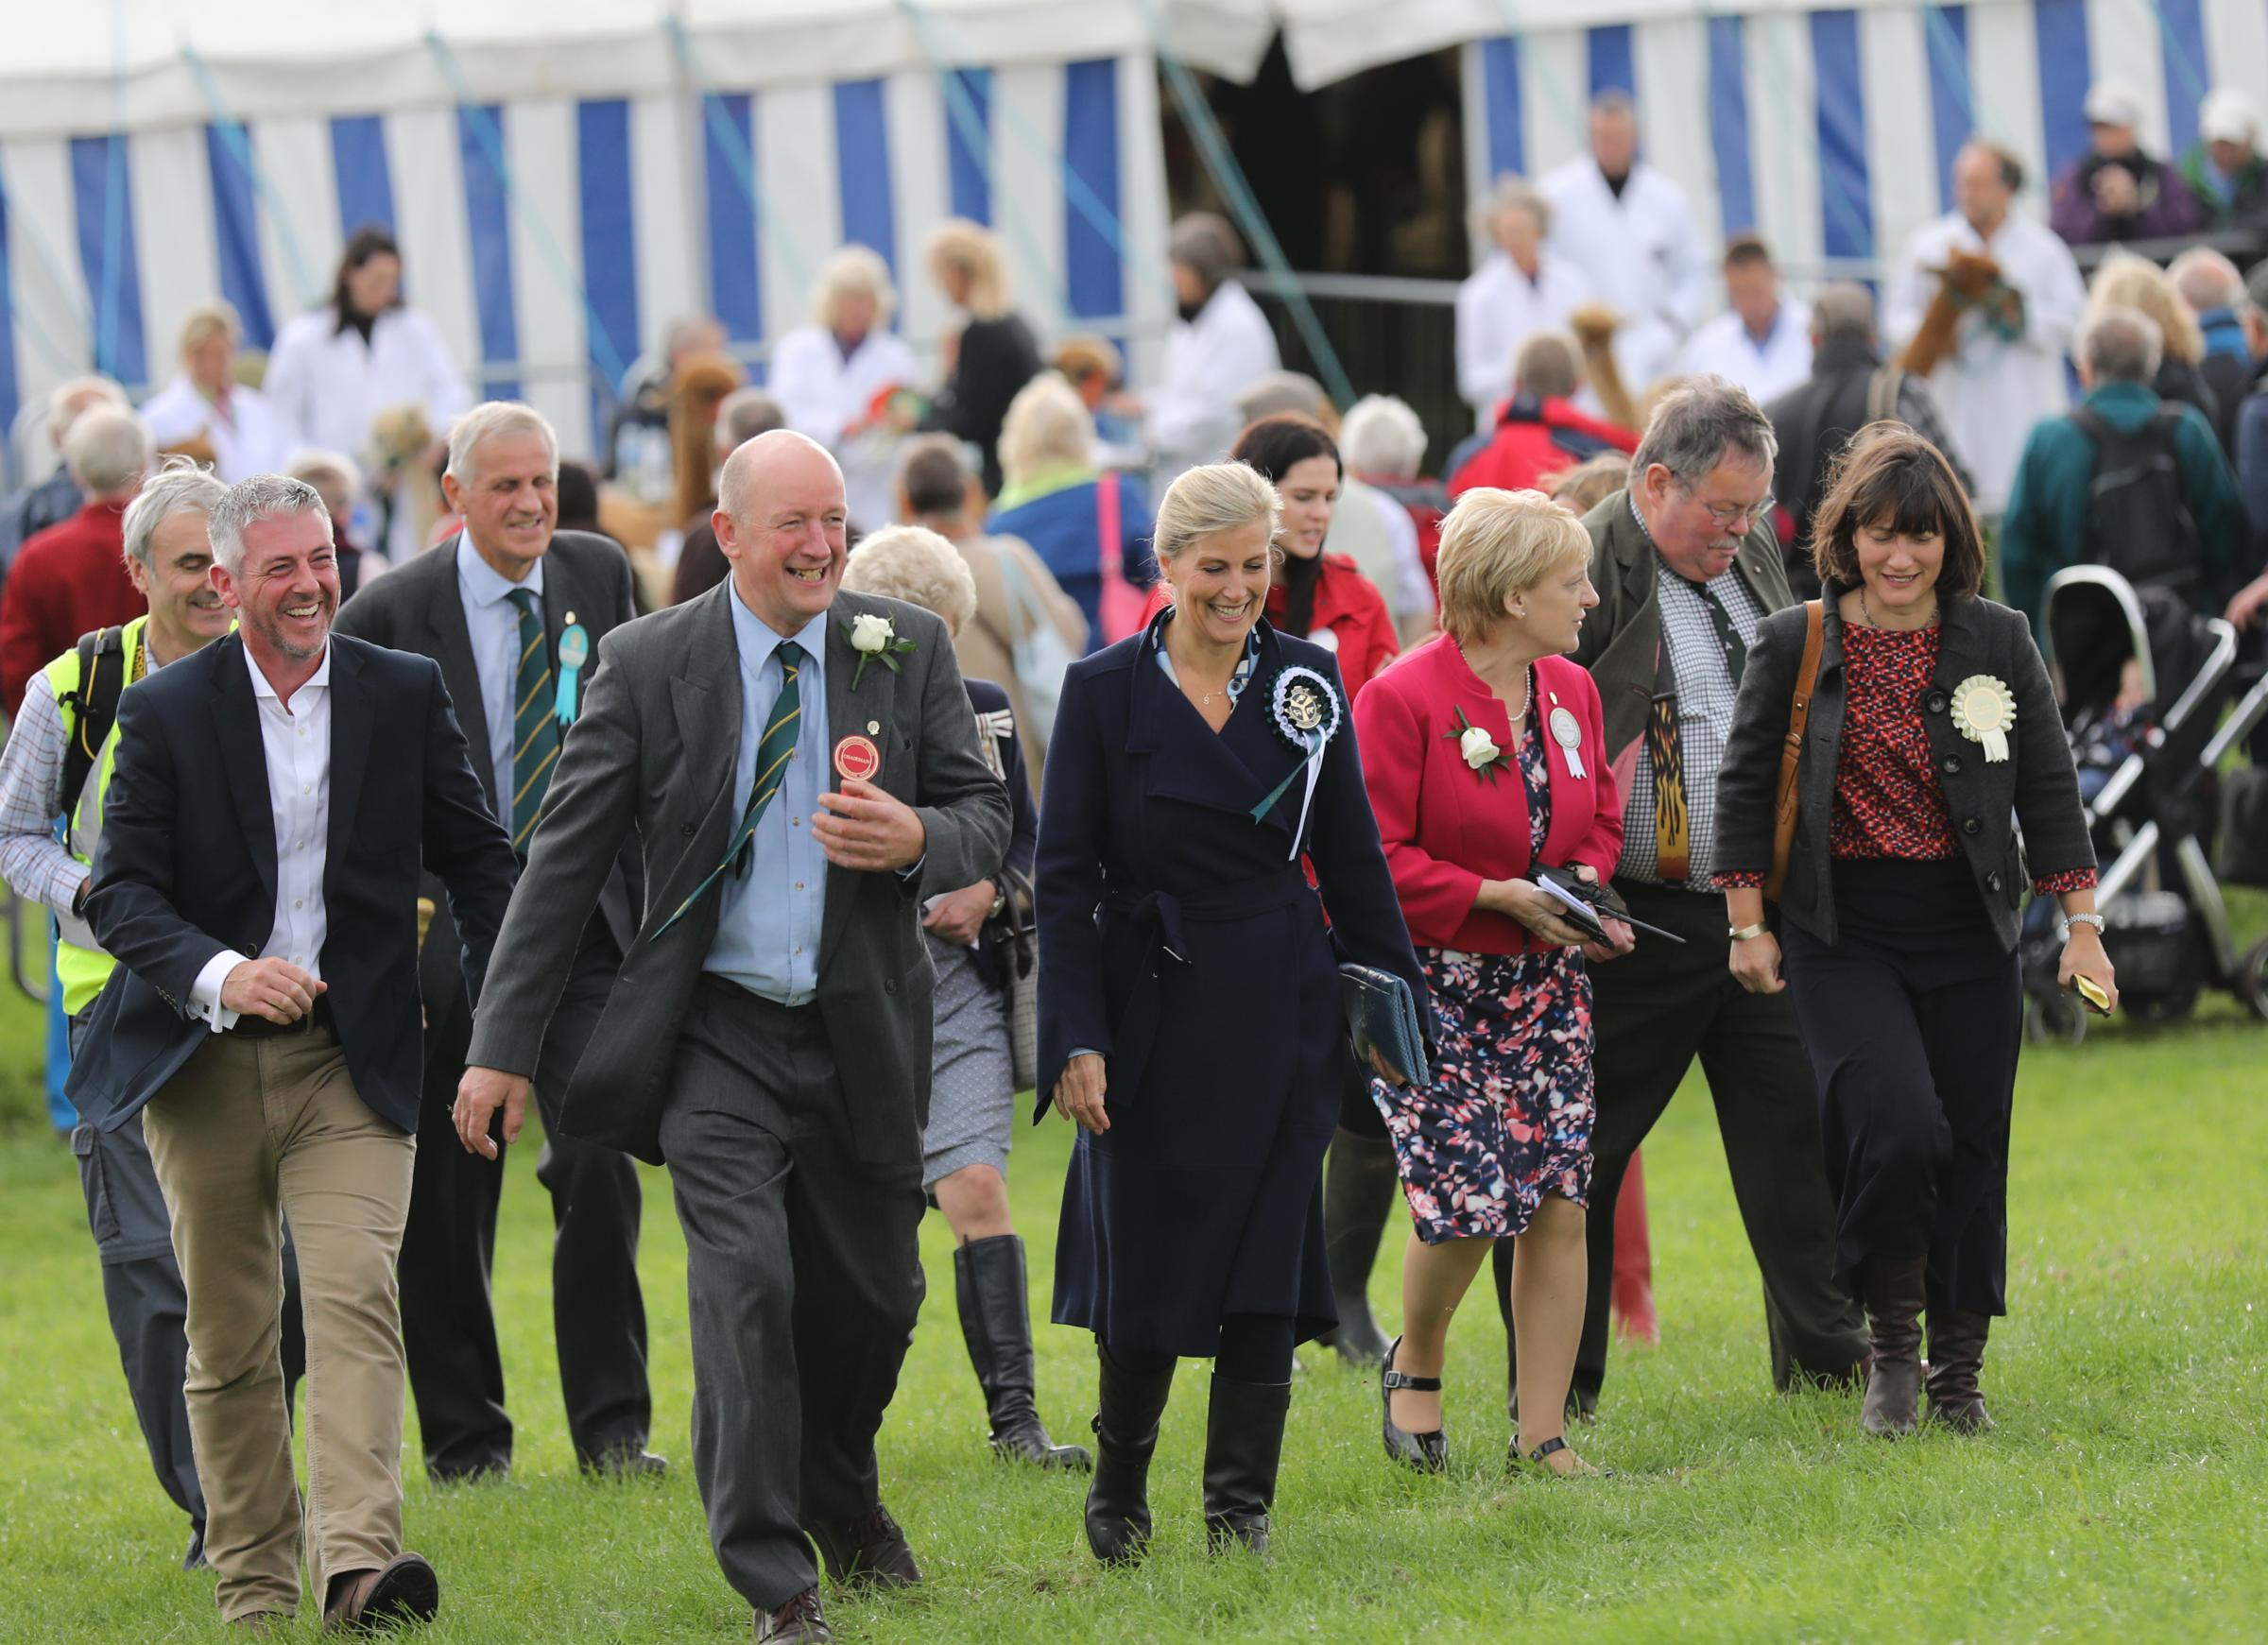 HRH The Countess of Wessex tours Westmorland County Show